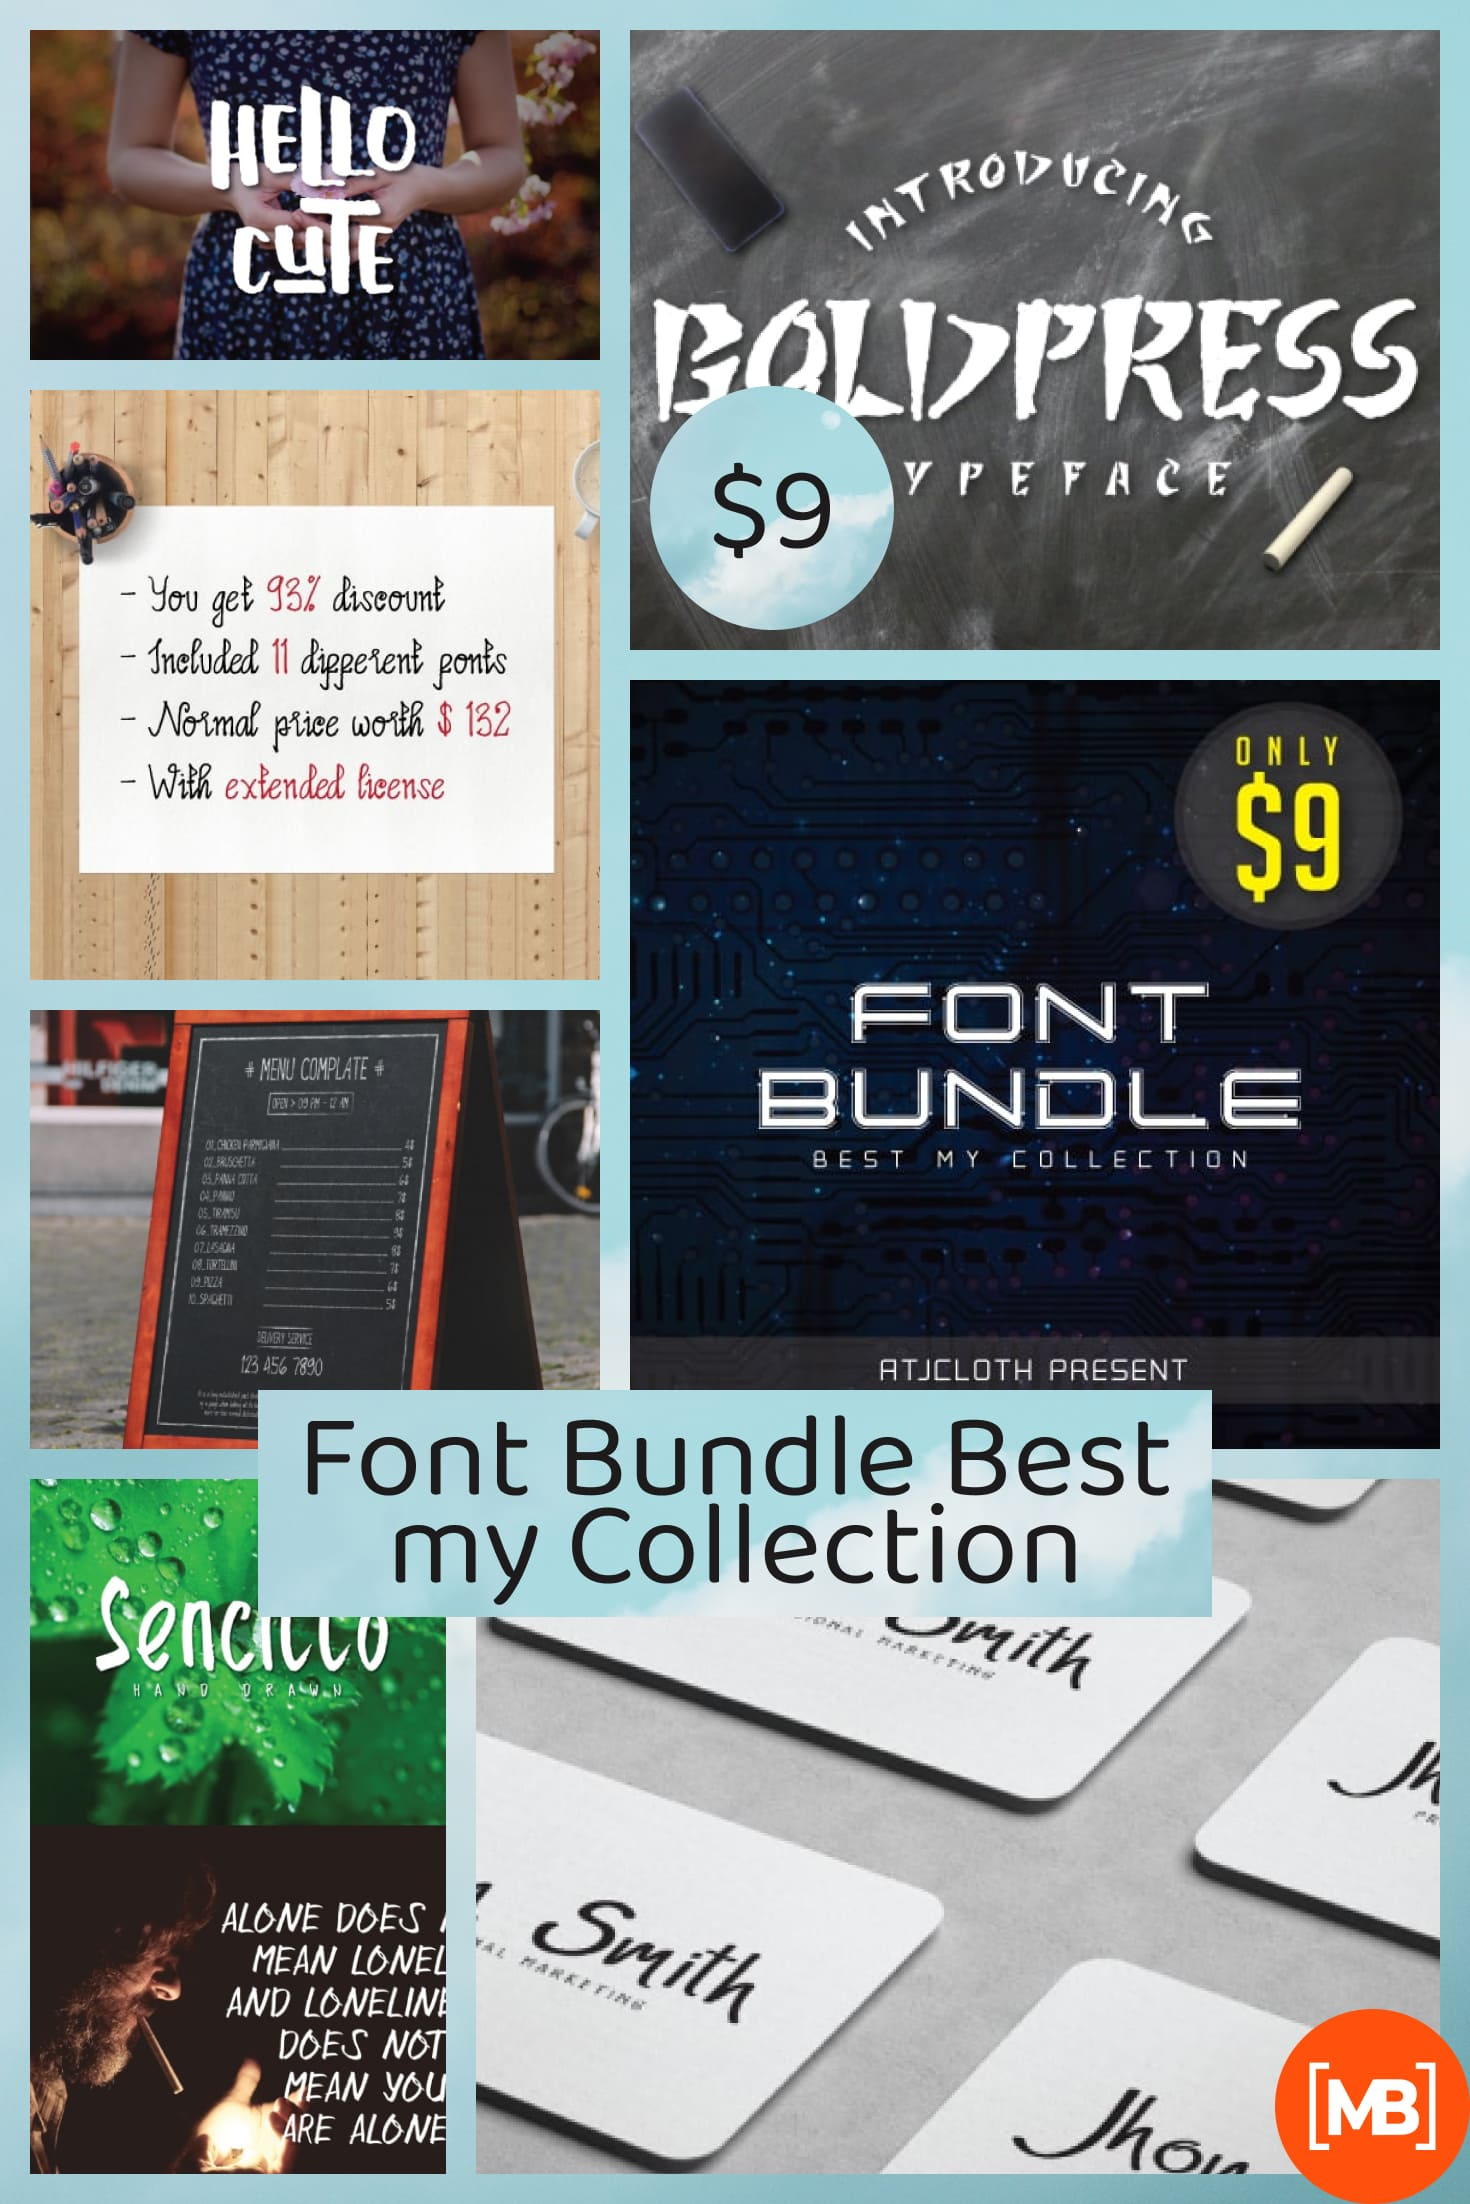 Font Bundle Best my Collection - Only $9. Collage Image.